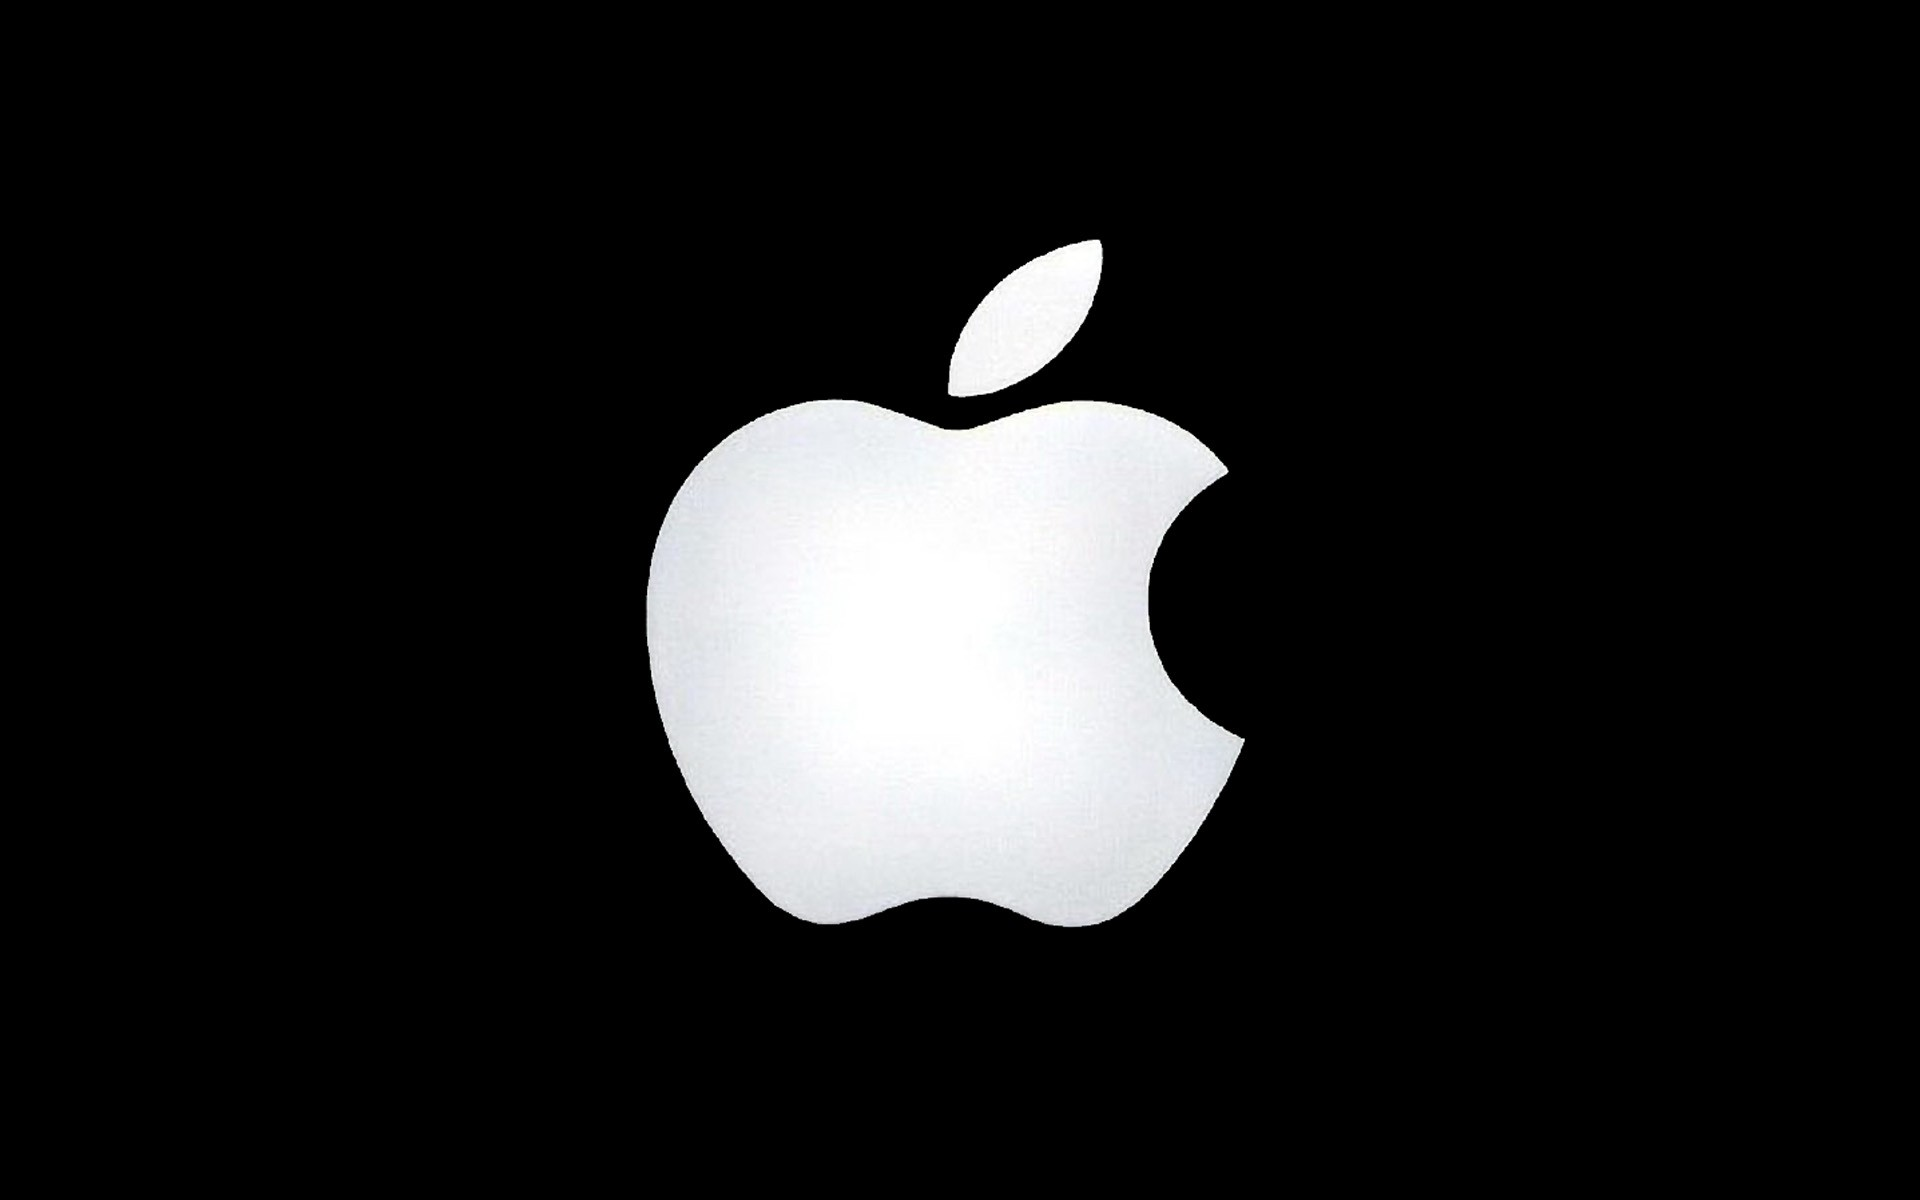 Apple Black and White Wallpaper Downloads 3544   Amazing 1920x1200